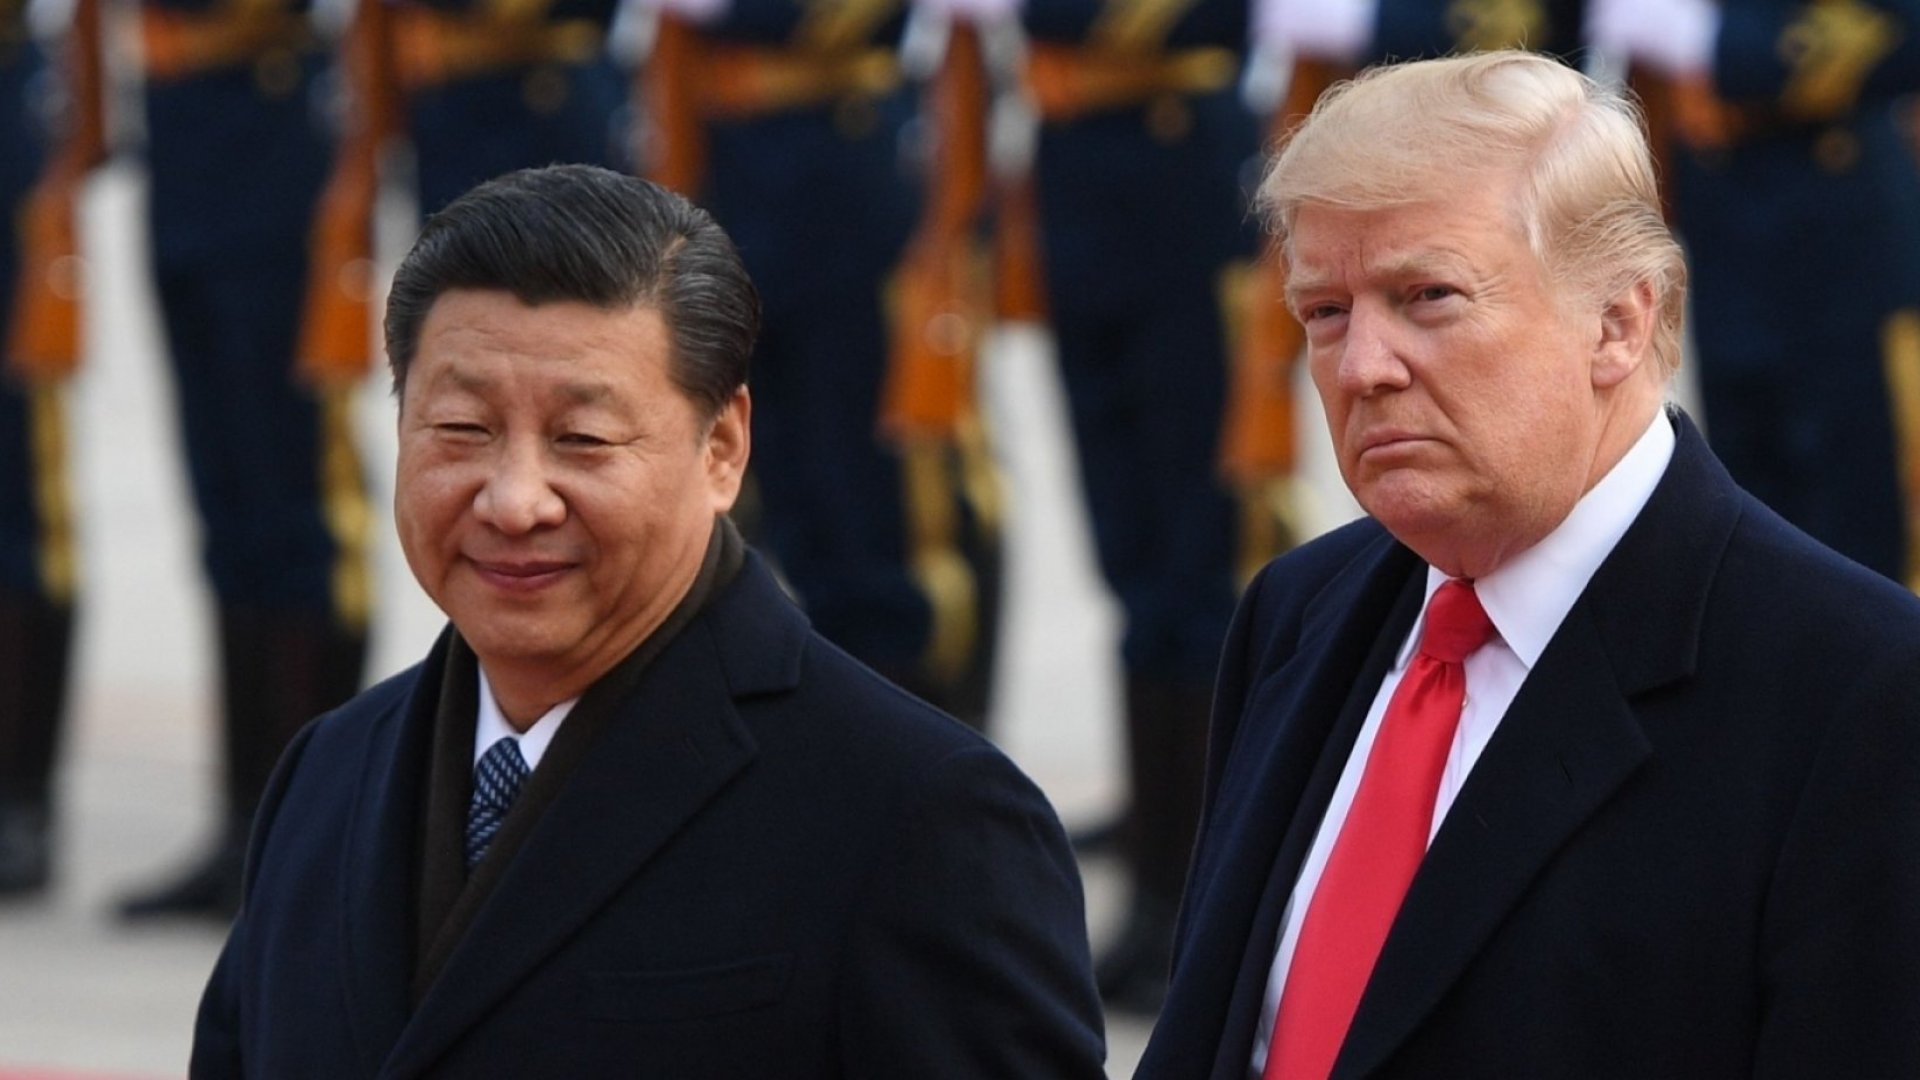 U.S. president Donald Trump with Chinese president Xi Jinping